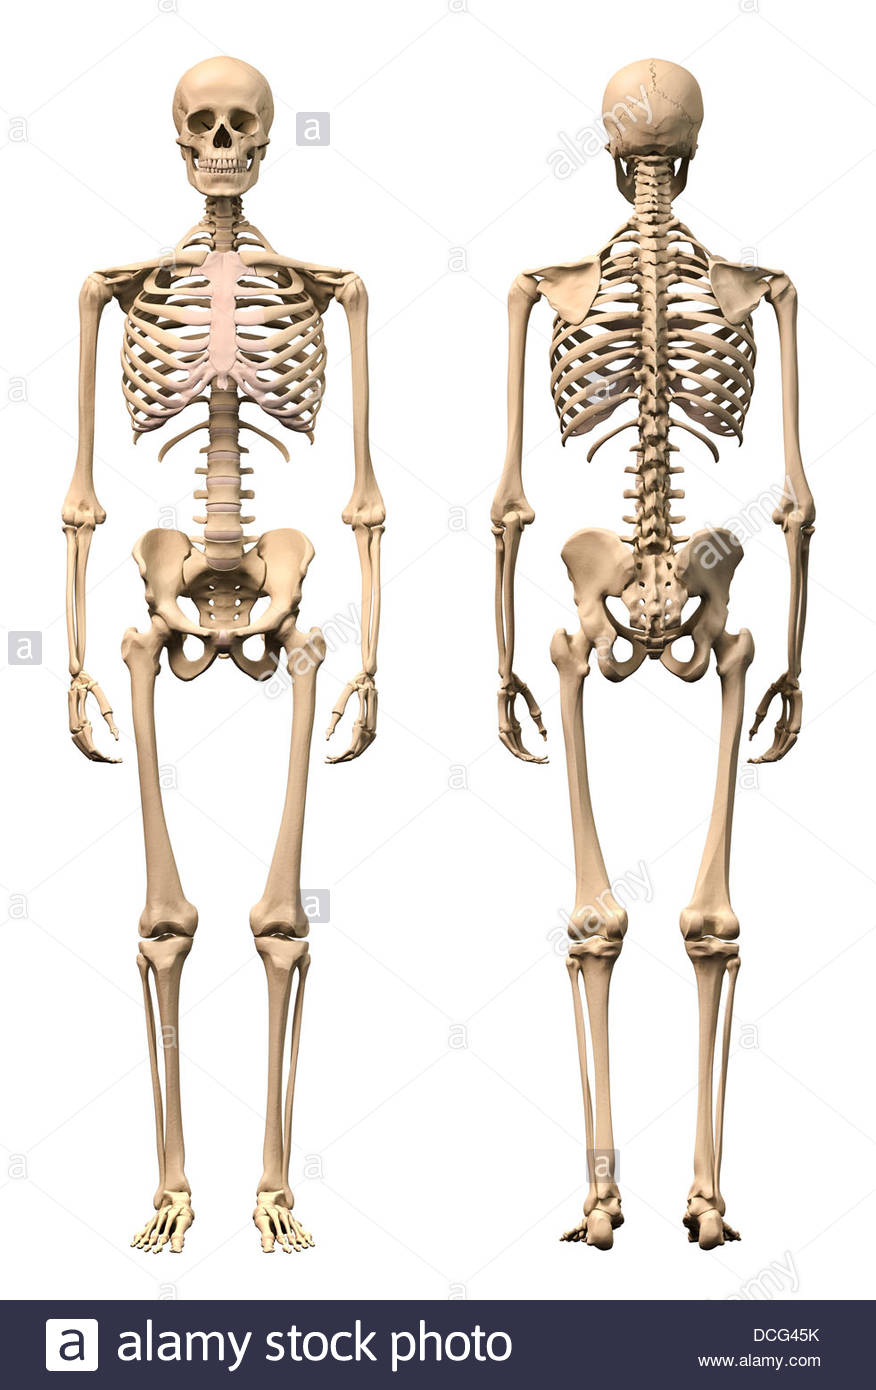 Anatomy Of Male Human Skeleton Front View And Back View Stock Photo